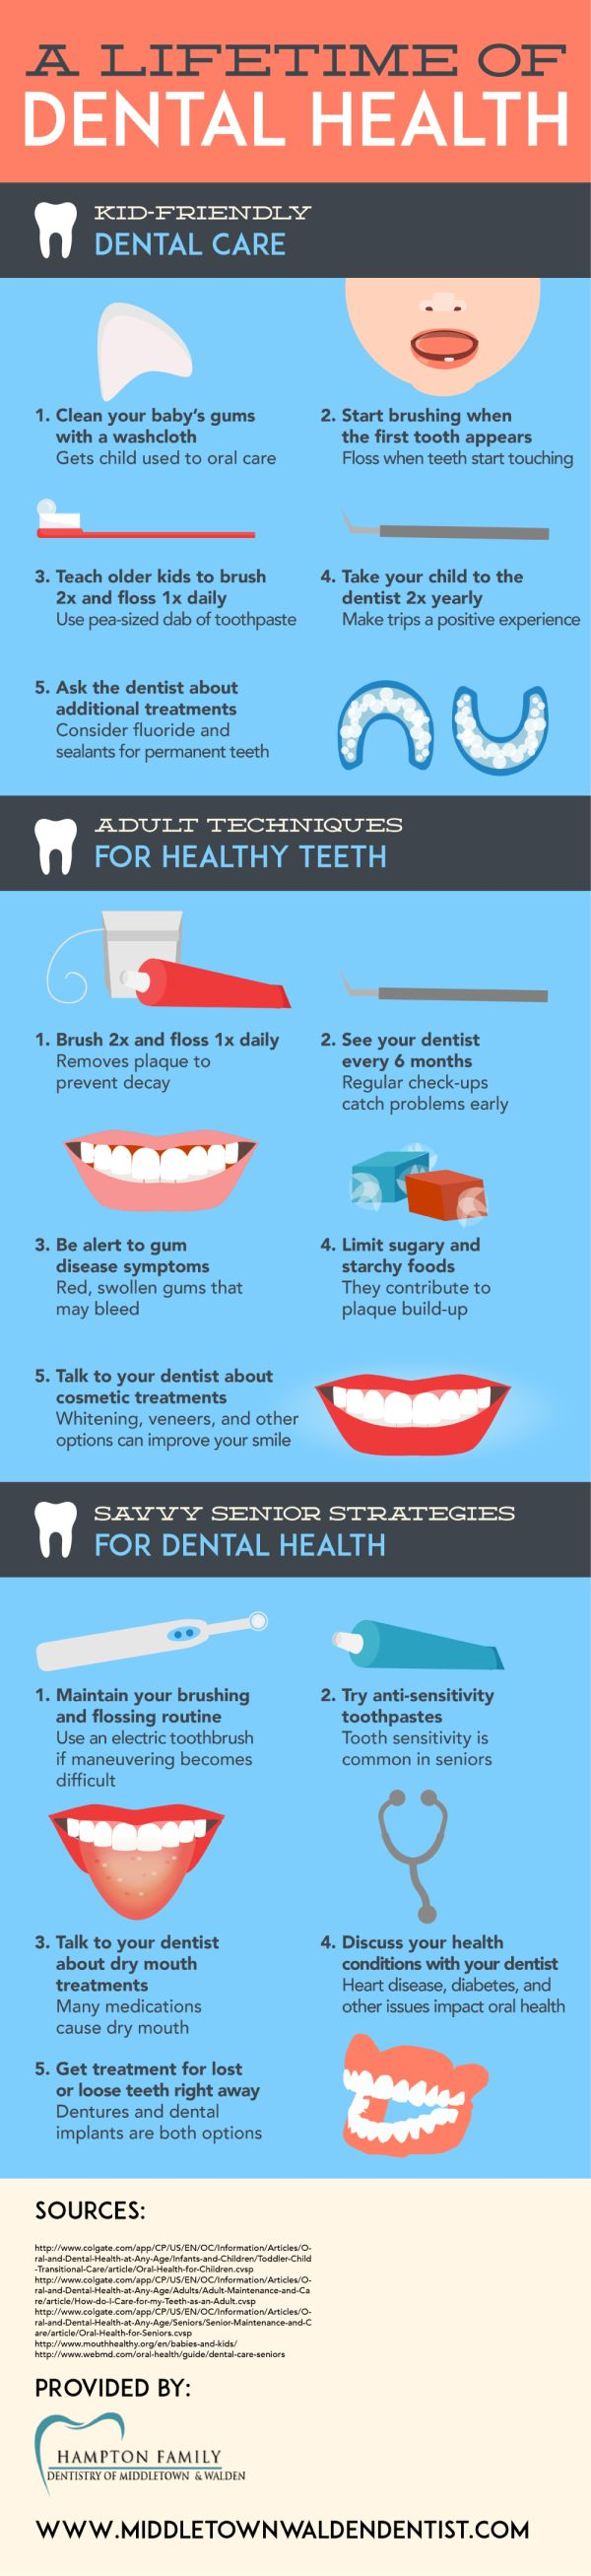 Tooth sensitivity is common in seniors. Look for anti-sensitivity toothpaste to reduce the effect of sensitive teeth and maintain optimal dental health. Get more advice about dental care during different stages of life by viewing this Middletown family dentistry infographic.